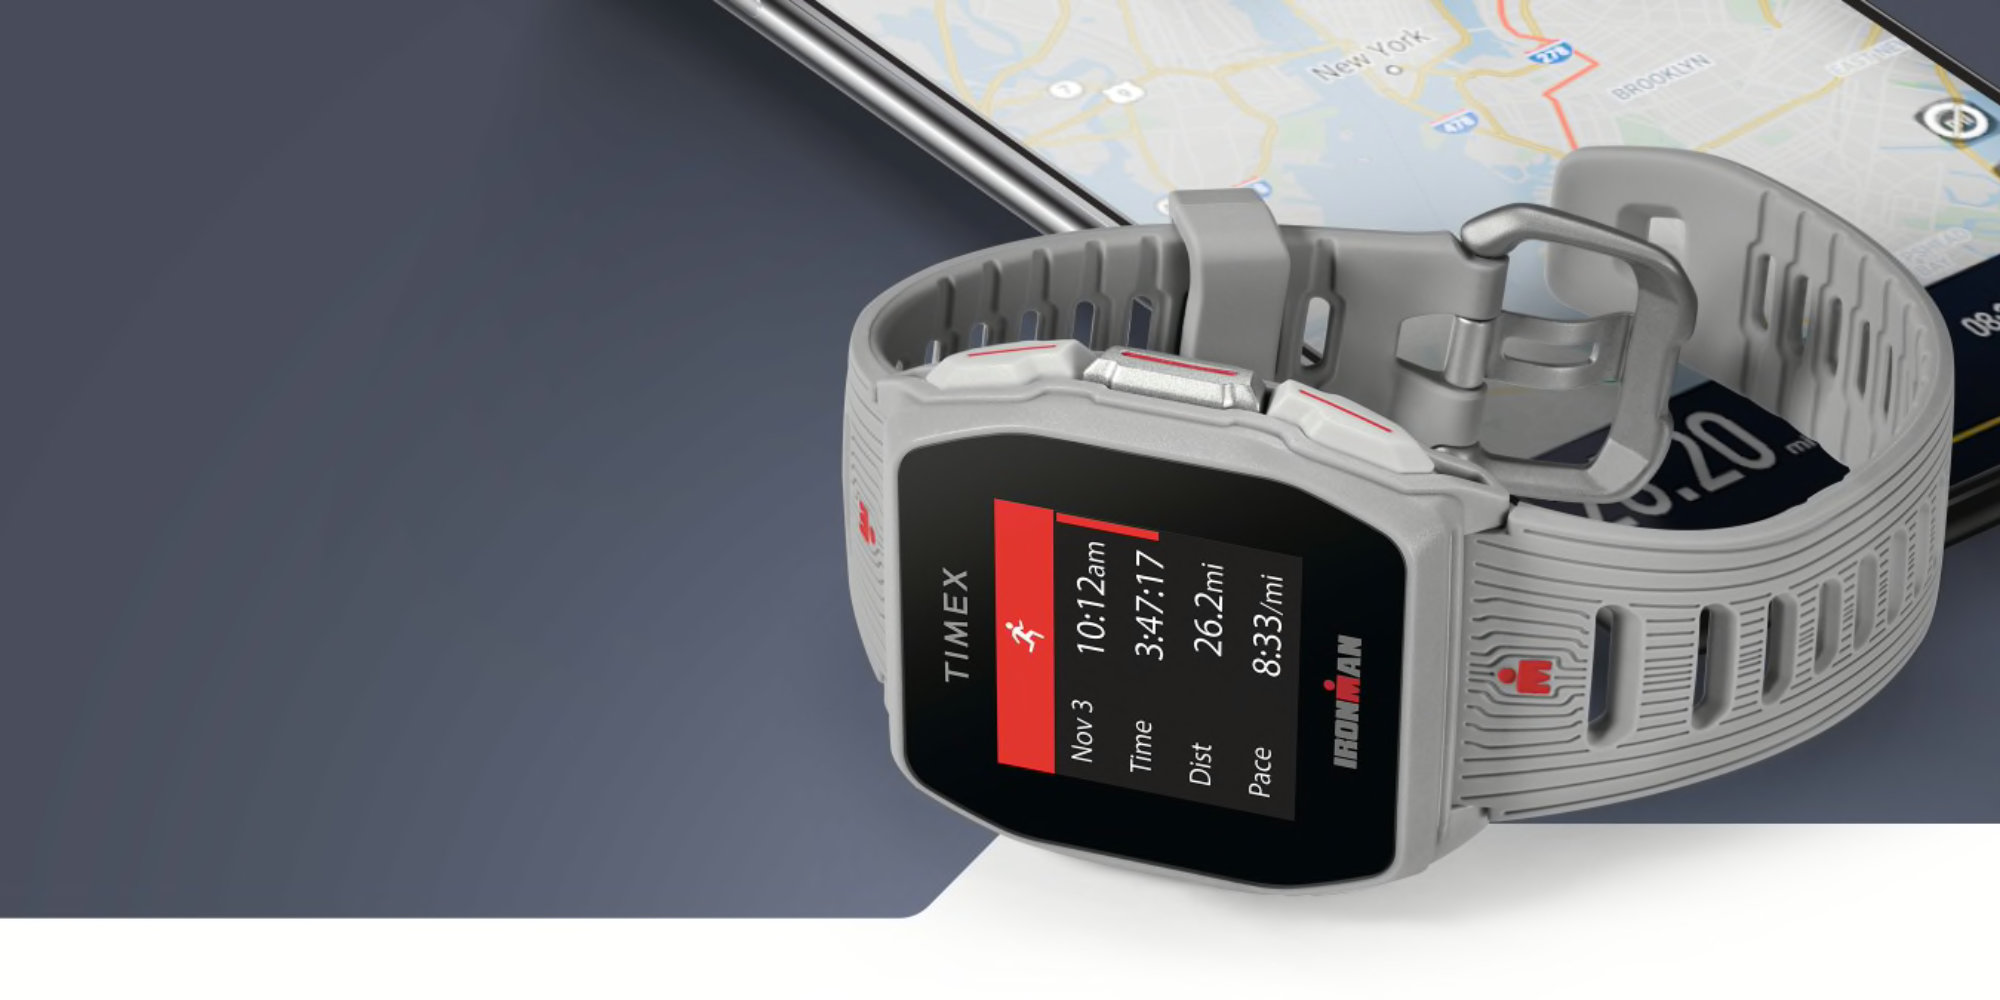 Timex Ironman debuts as the company's first-ever smartwatch - 9to5Toys